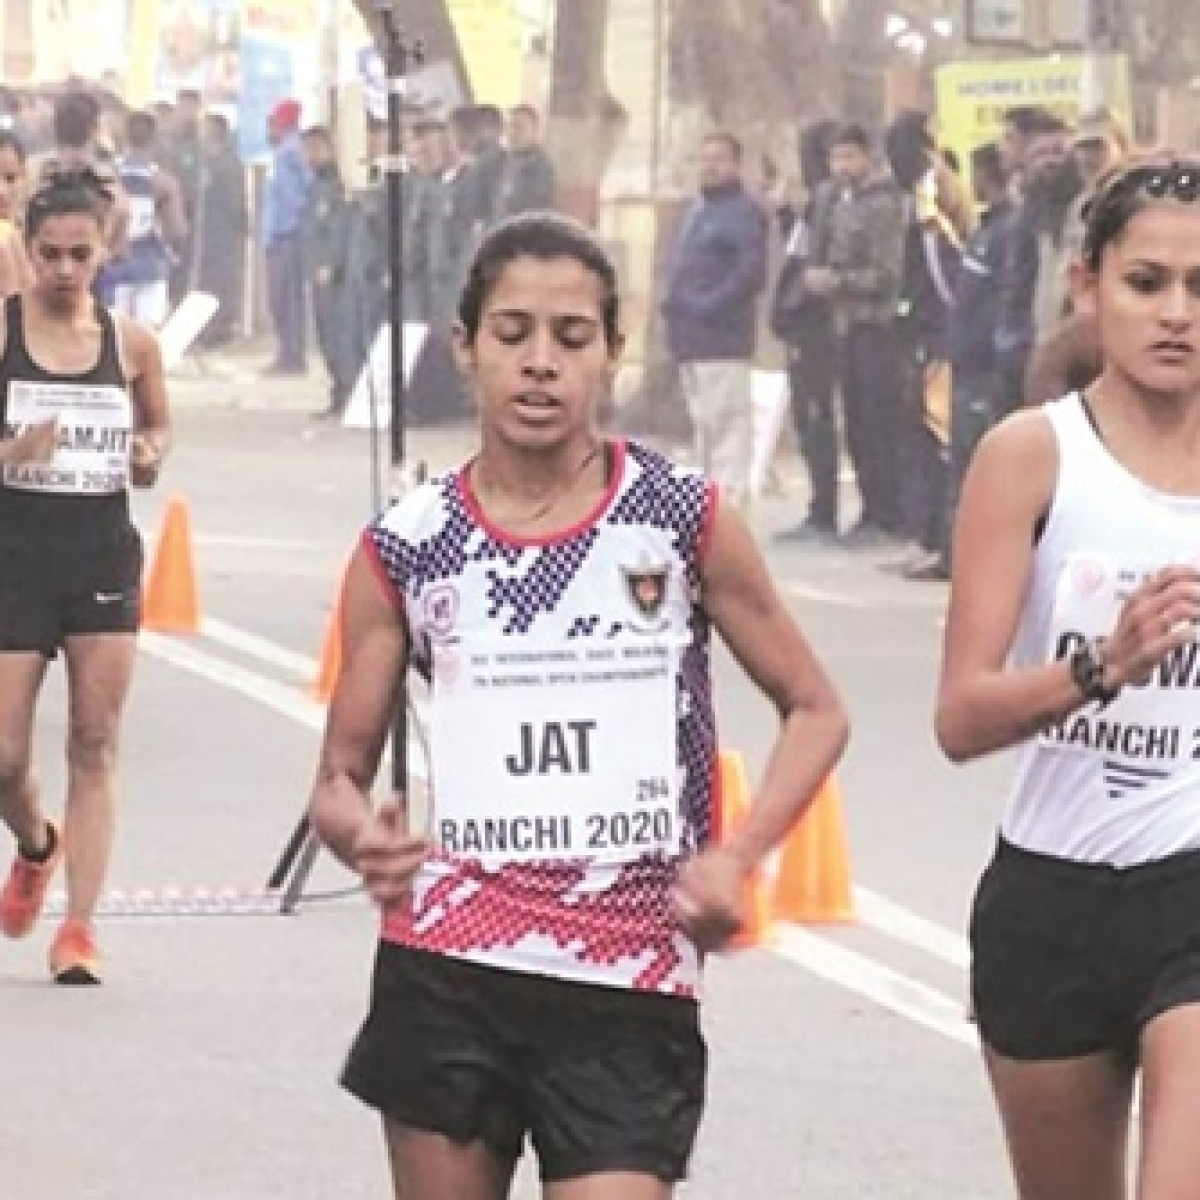 Self-made athlete Bhawana Jat's Olympic dreams have come to a crashing halt and she is disappointed